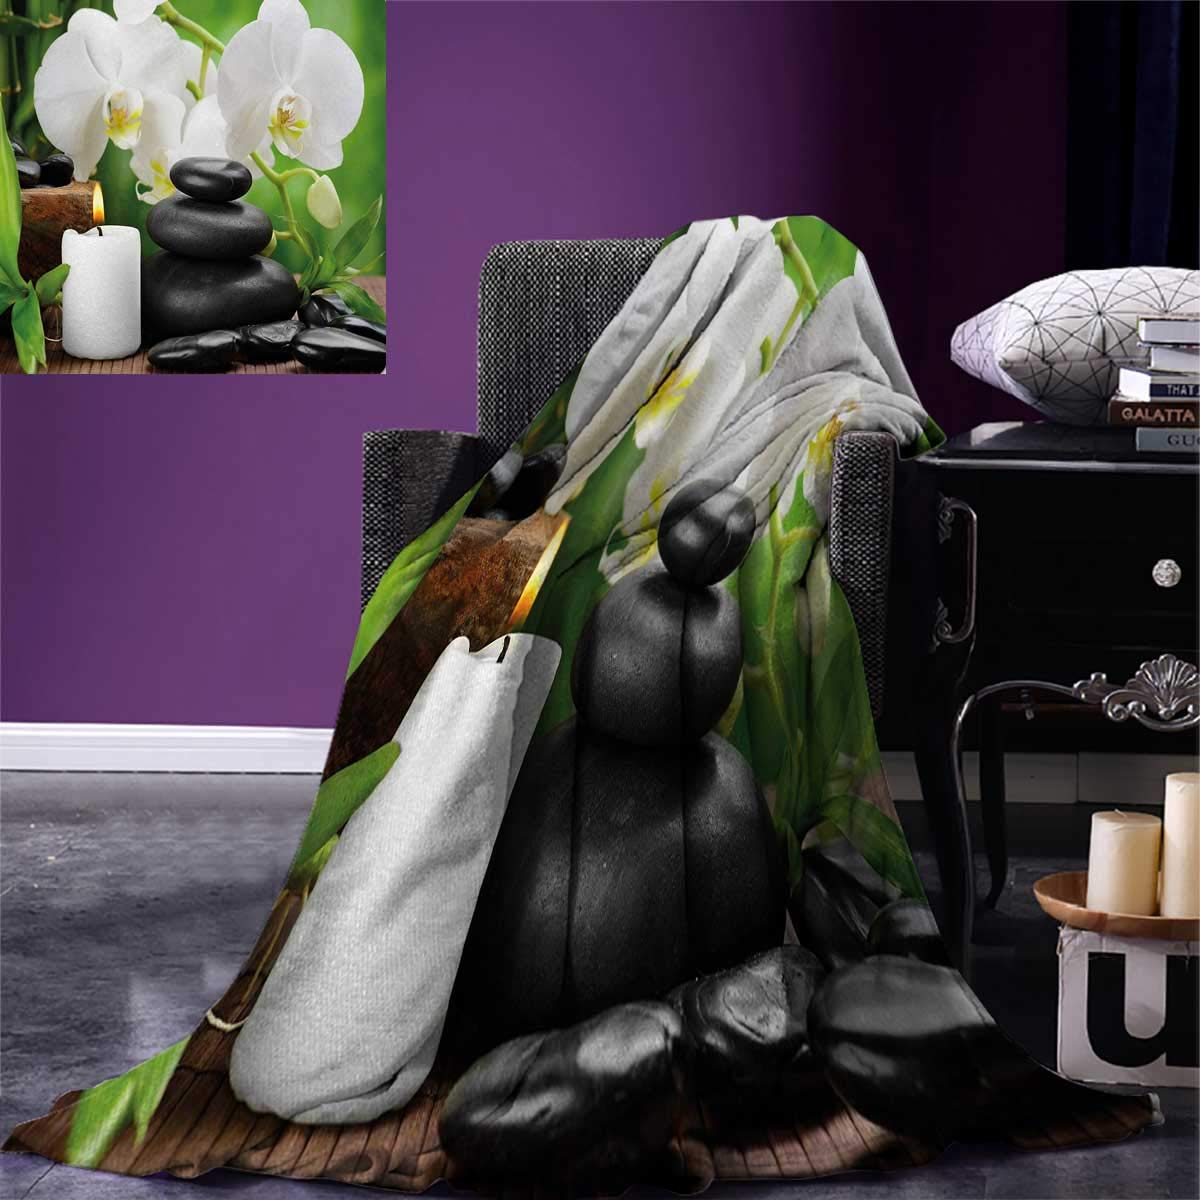 Spa Digital Printing Blanket Zen Hot Massage Stones with Orchid Candles and Magnificent Nature Remedies Summer Quilt Comforter 80''x60'' Black White and Green by  (Image #1)